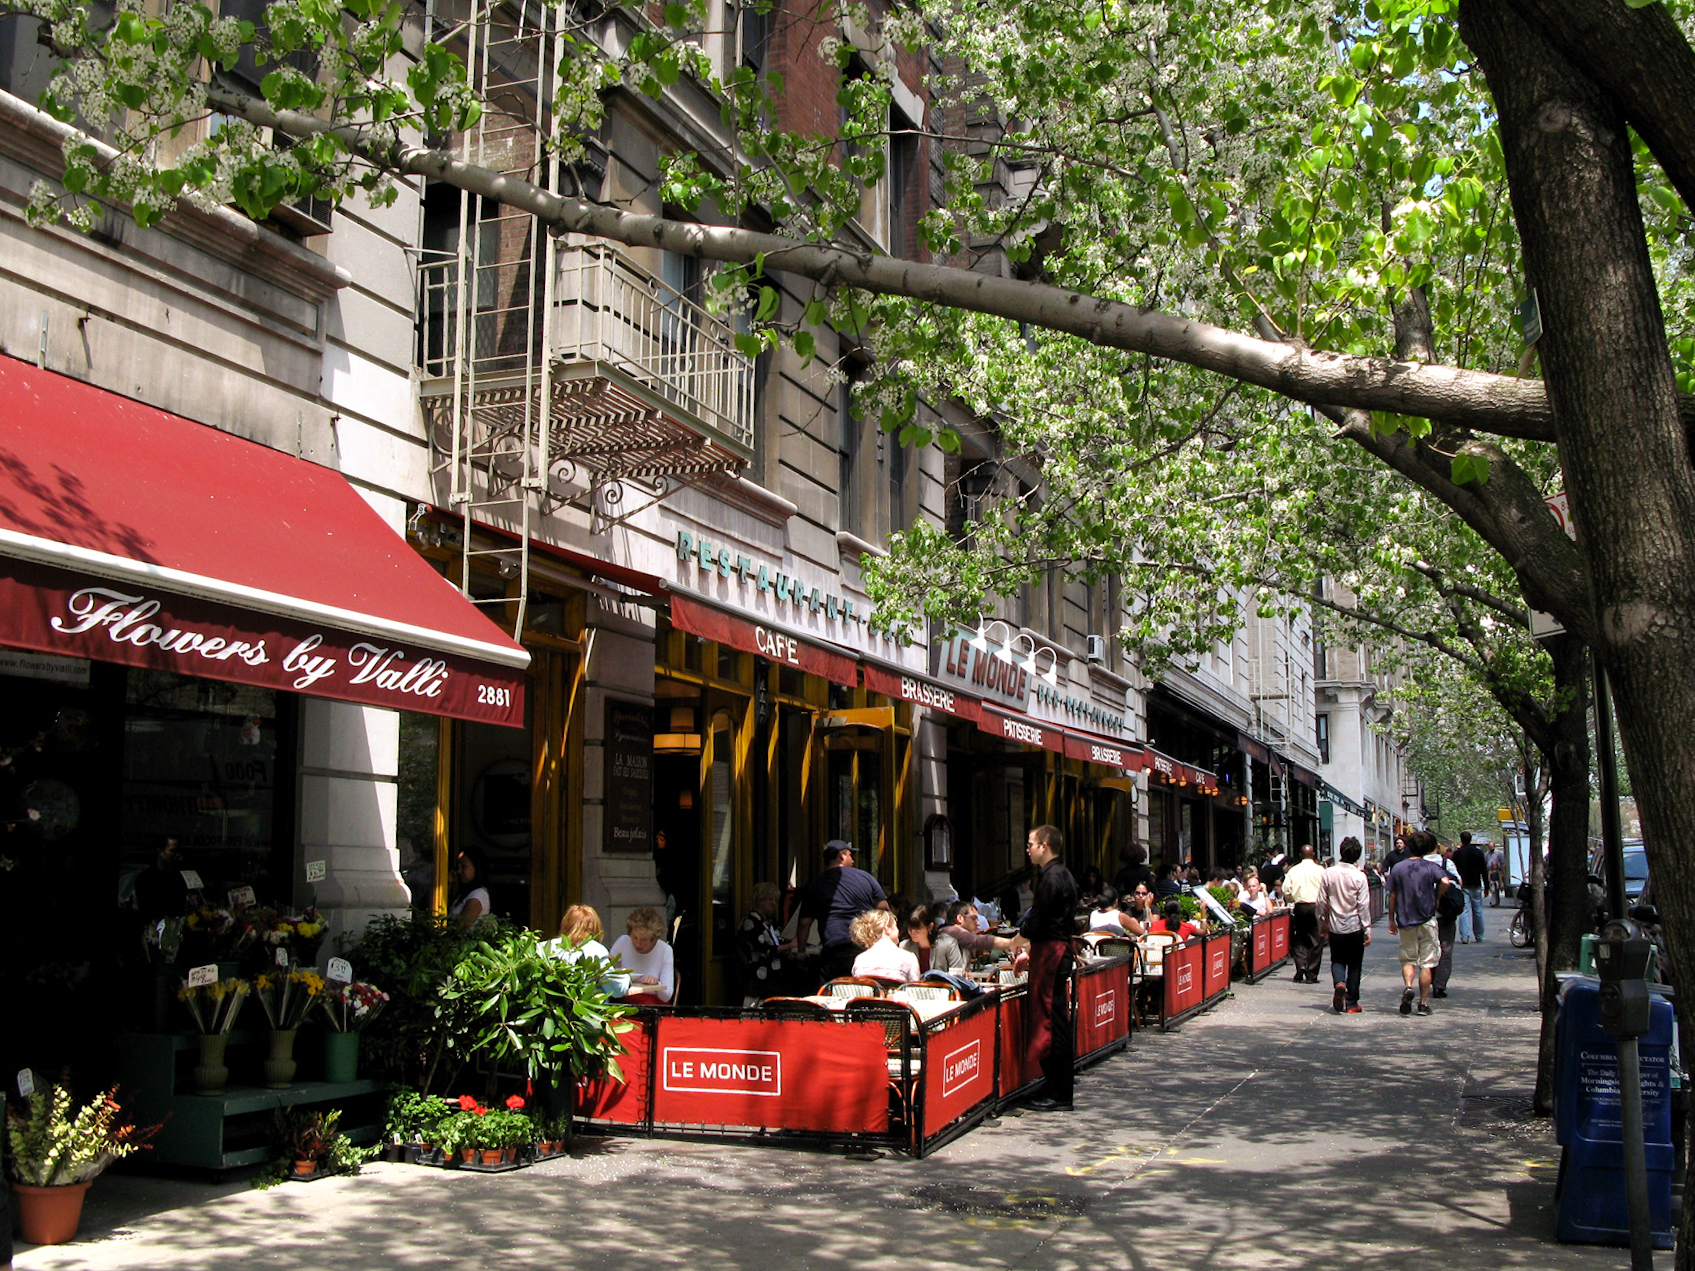 Cafes Upper West Side New York City